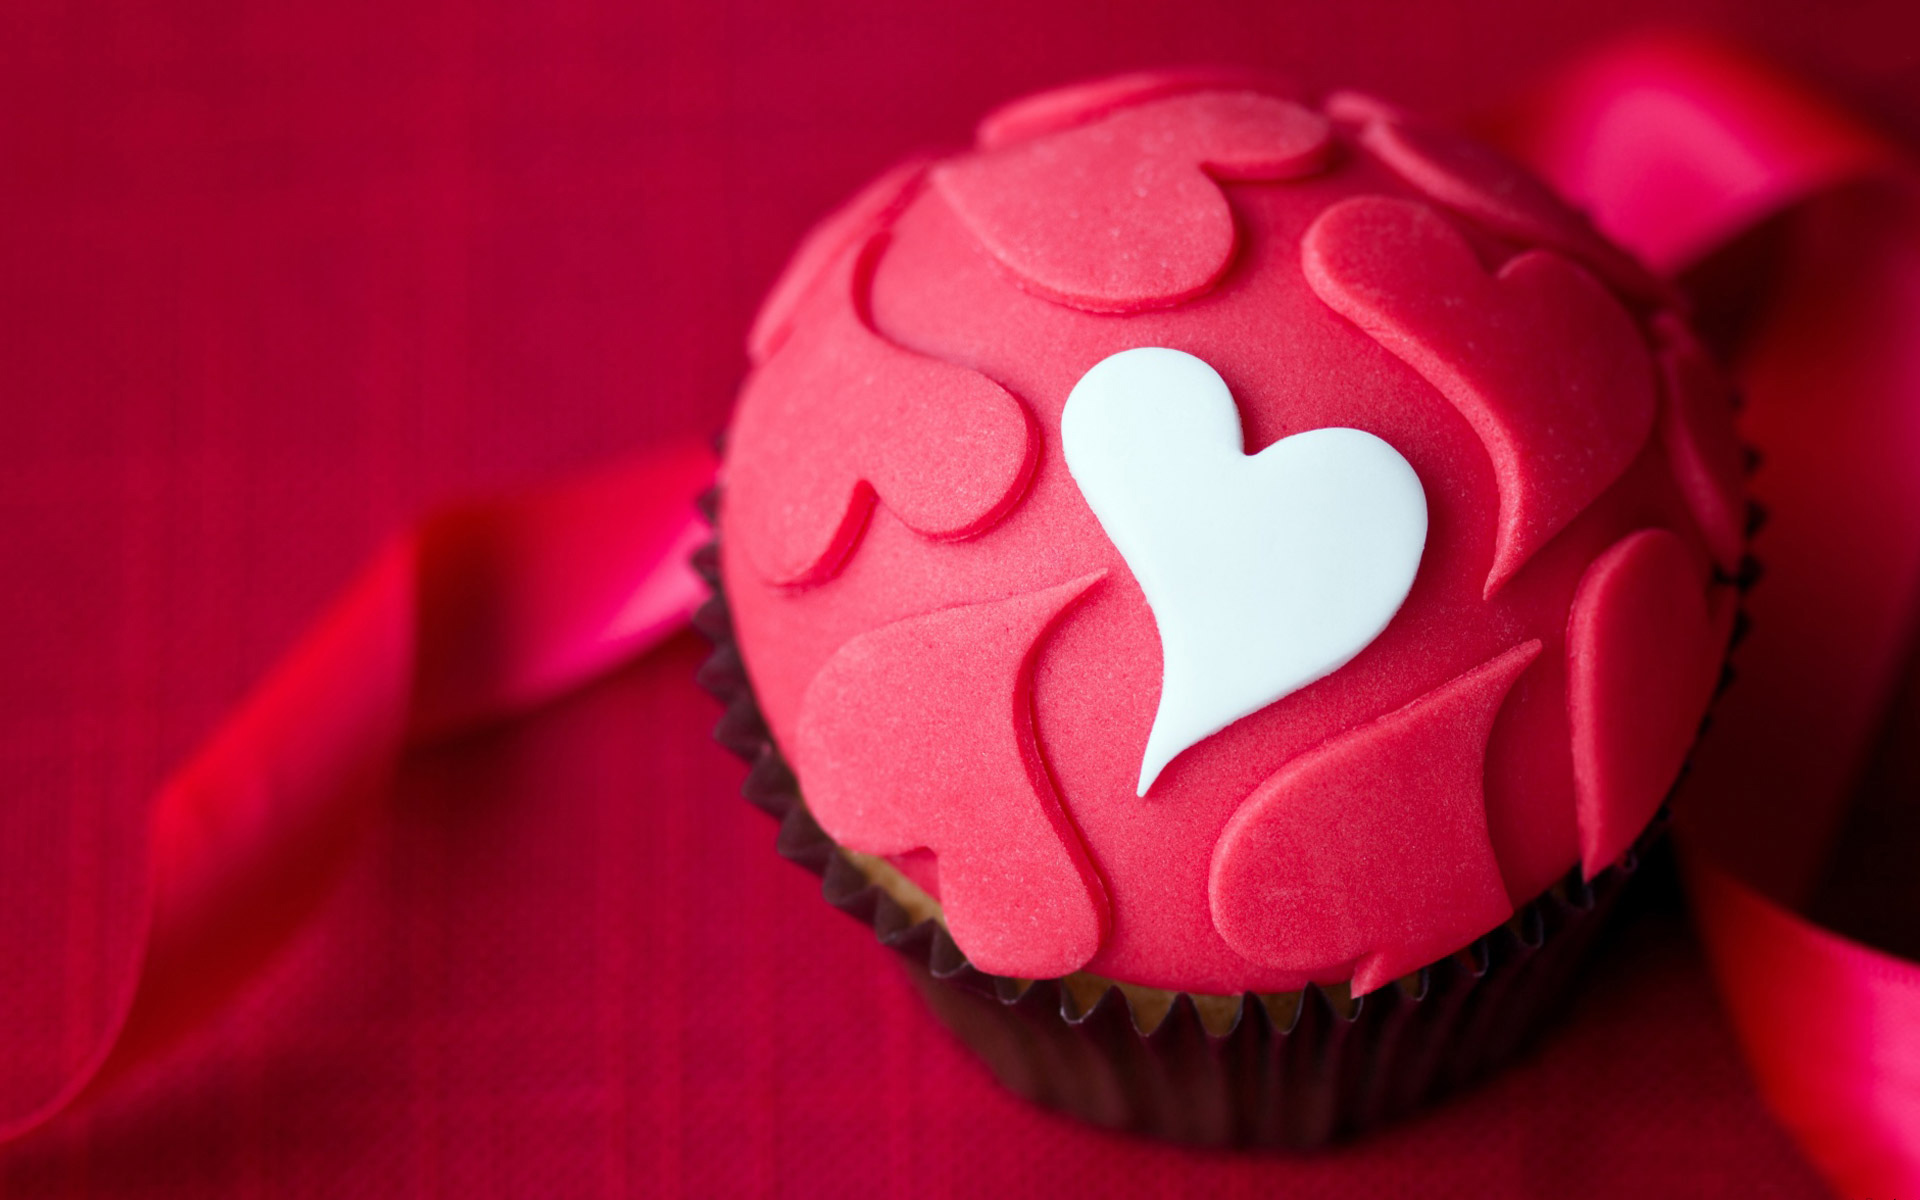 Download Hd Love Cupcake Wallpapers For Your Desktop Iphone And